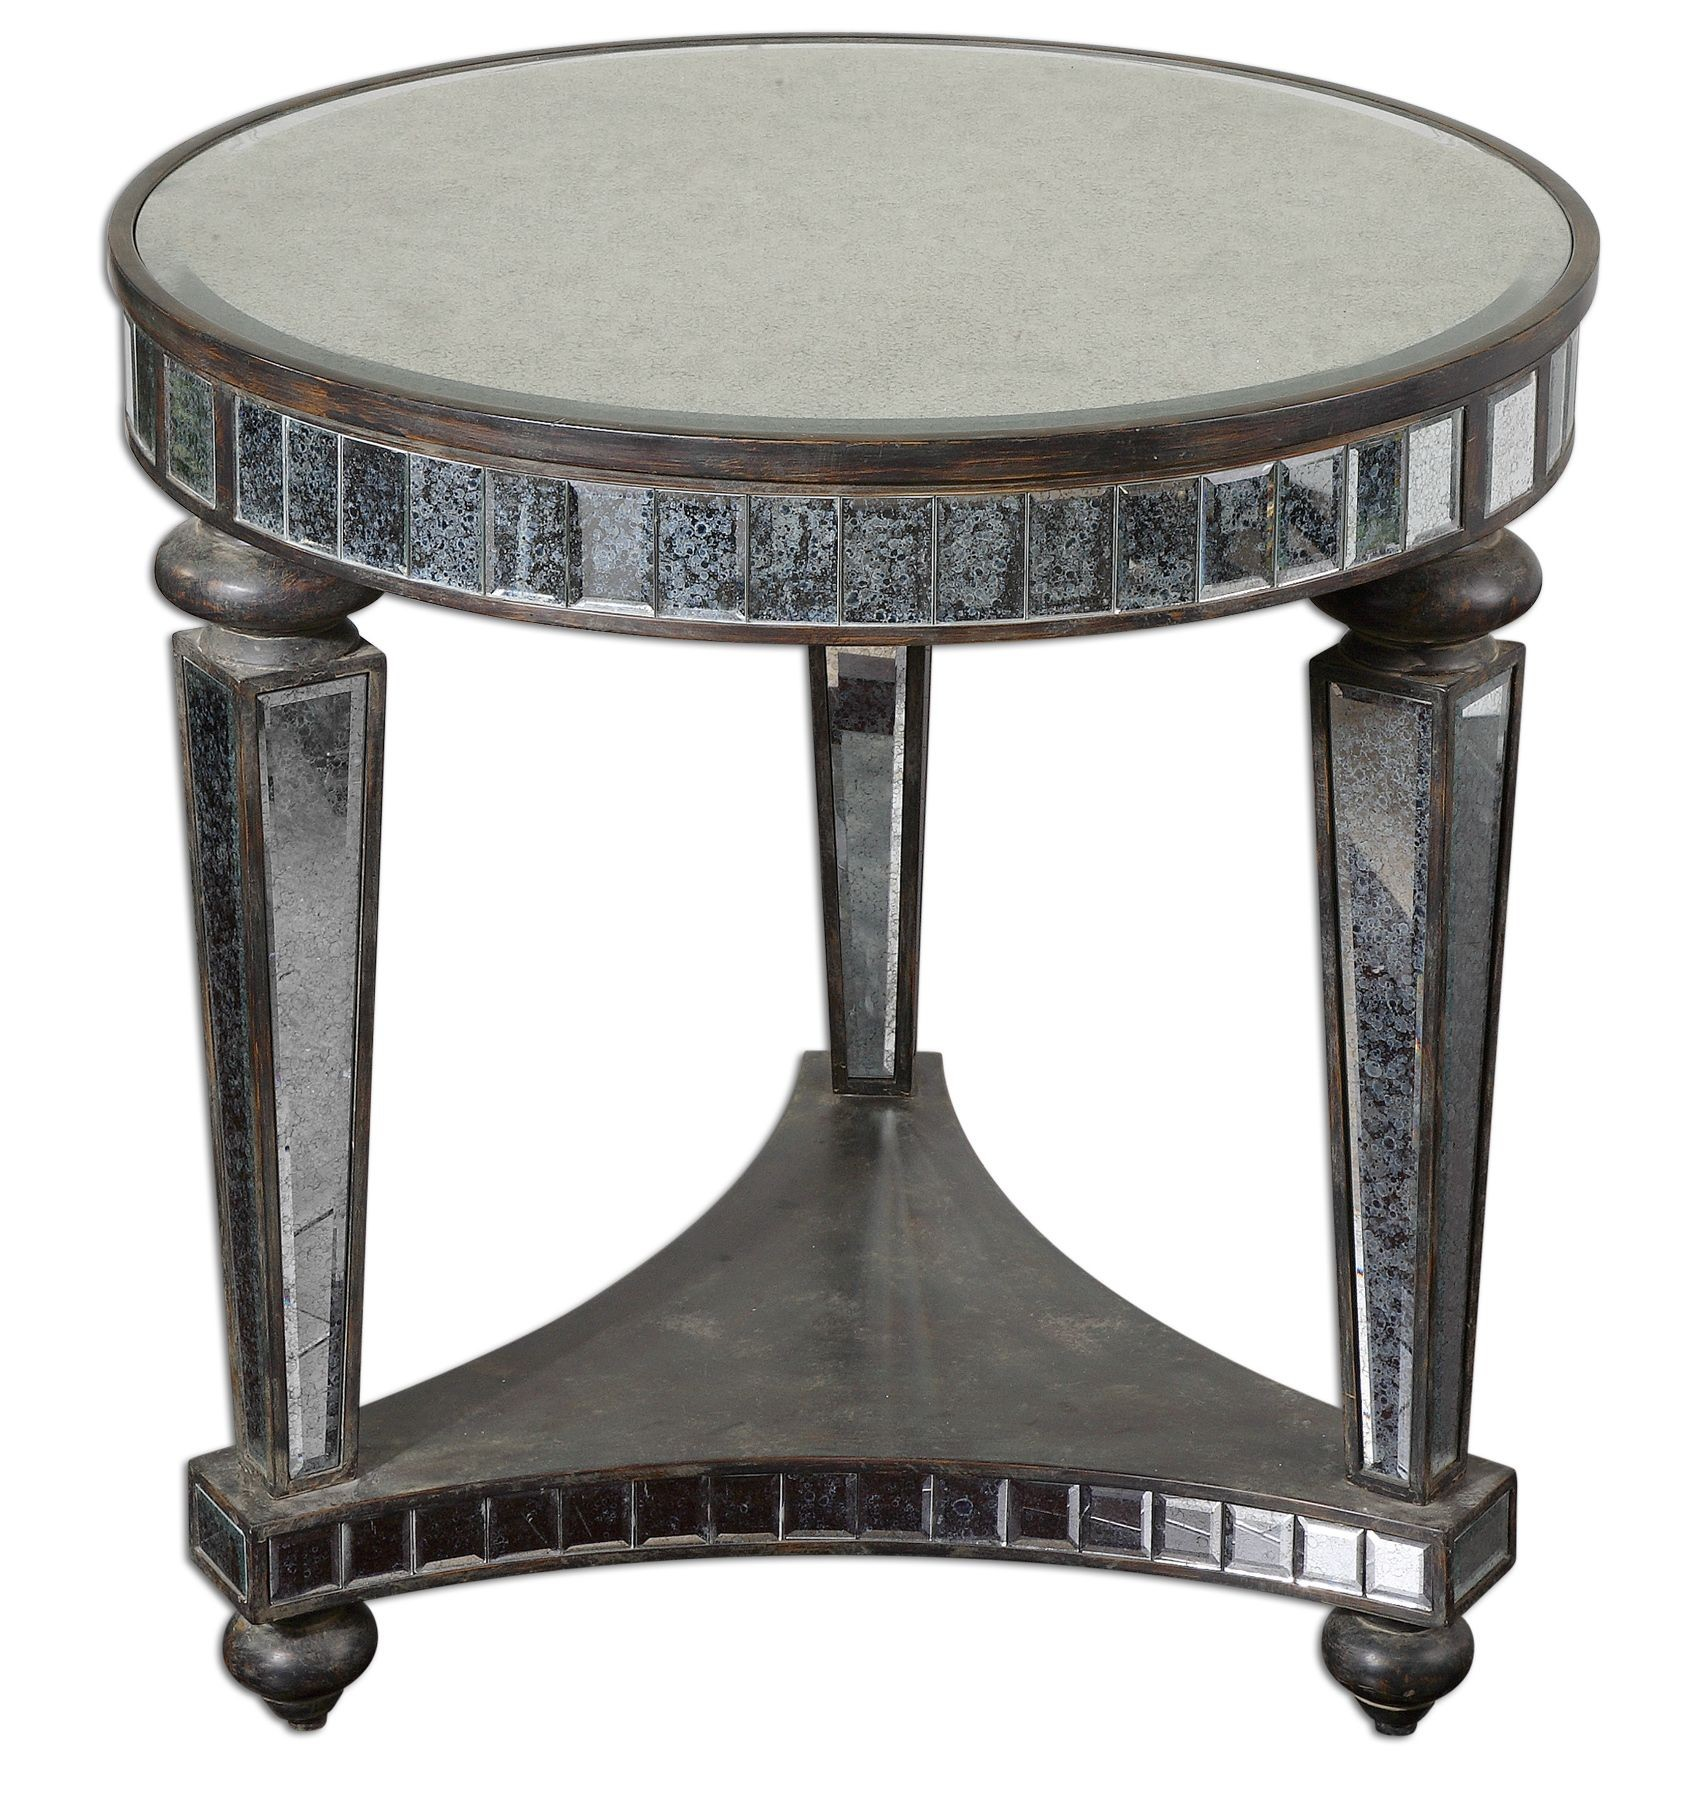 old and vintage round mirrored accent table with shelves square antique gold black legs retro end tables storage space new home decor ideas small concrete dining plant holder